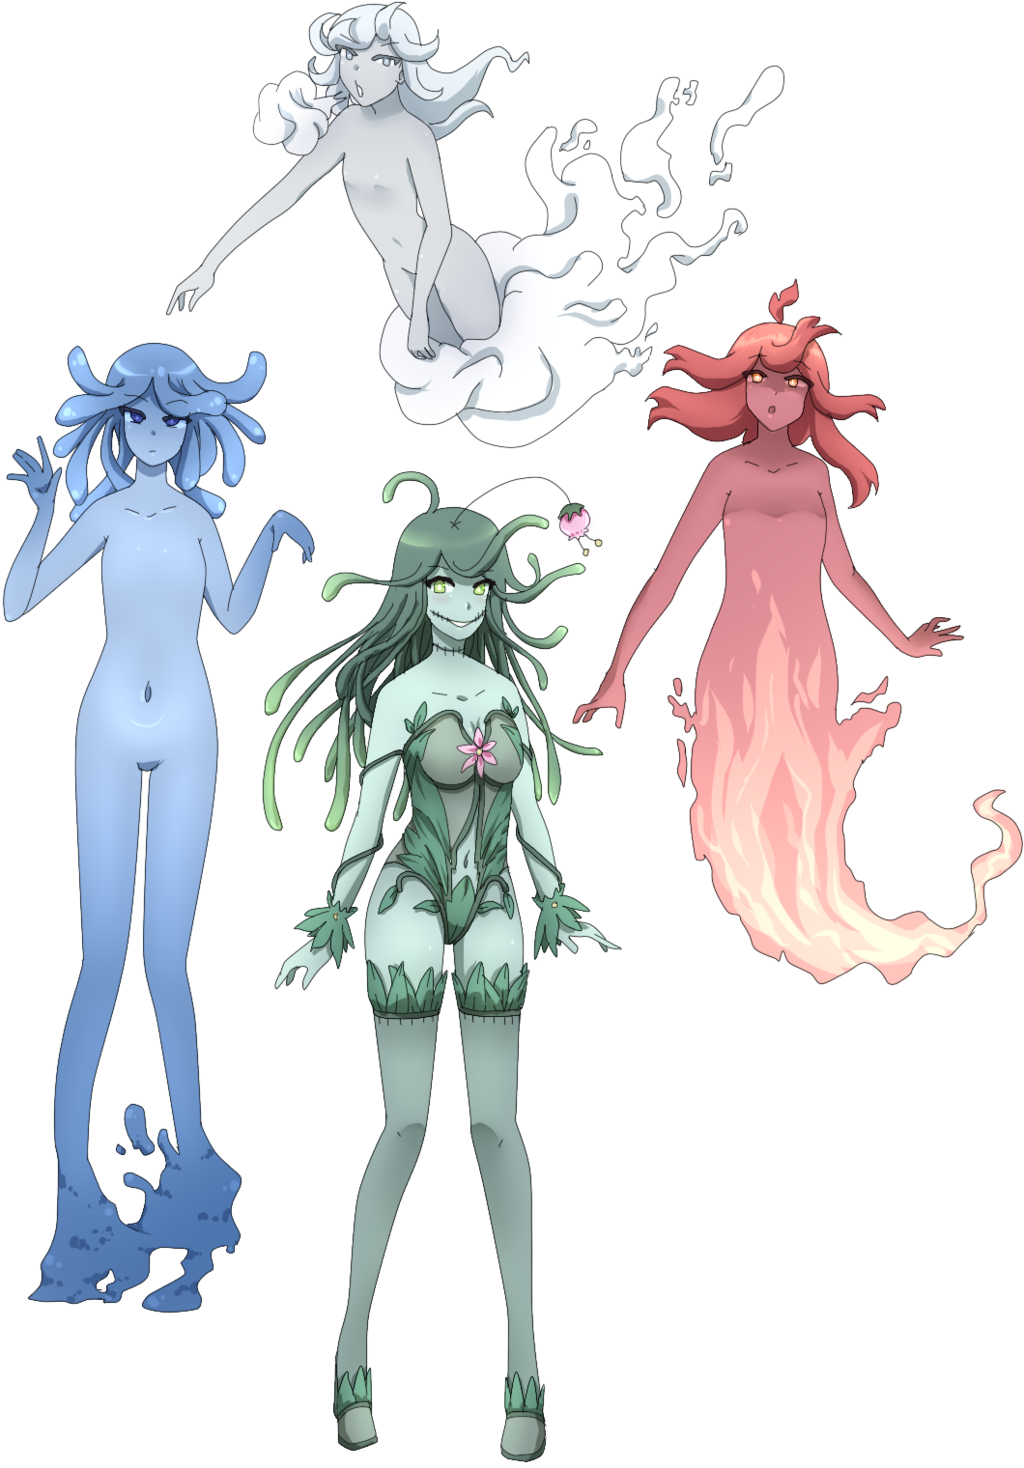 Preparatory drawing elemental. Girls by lenk on